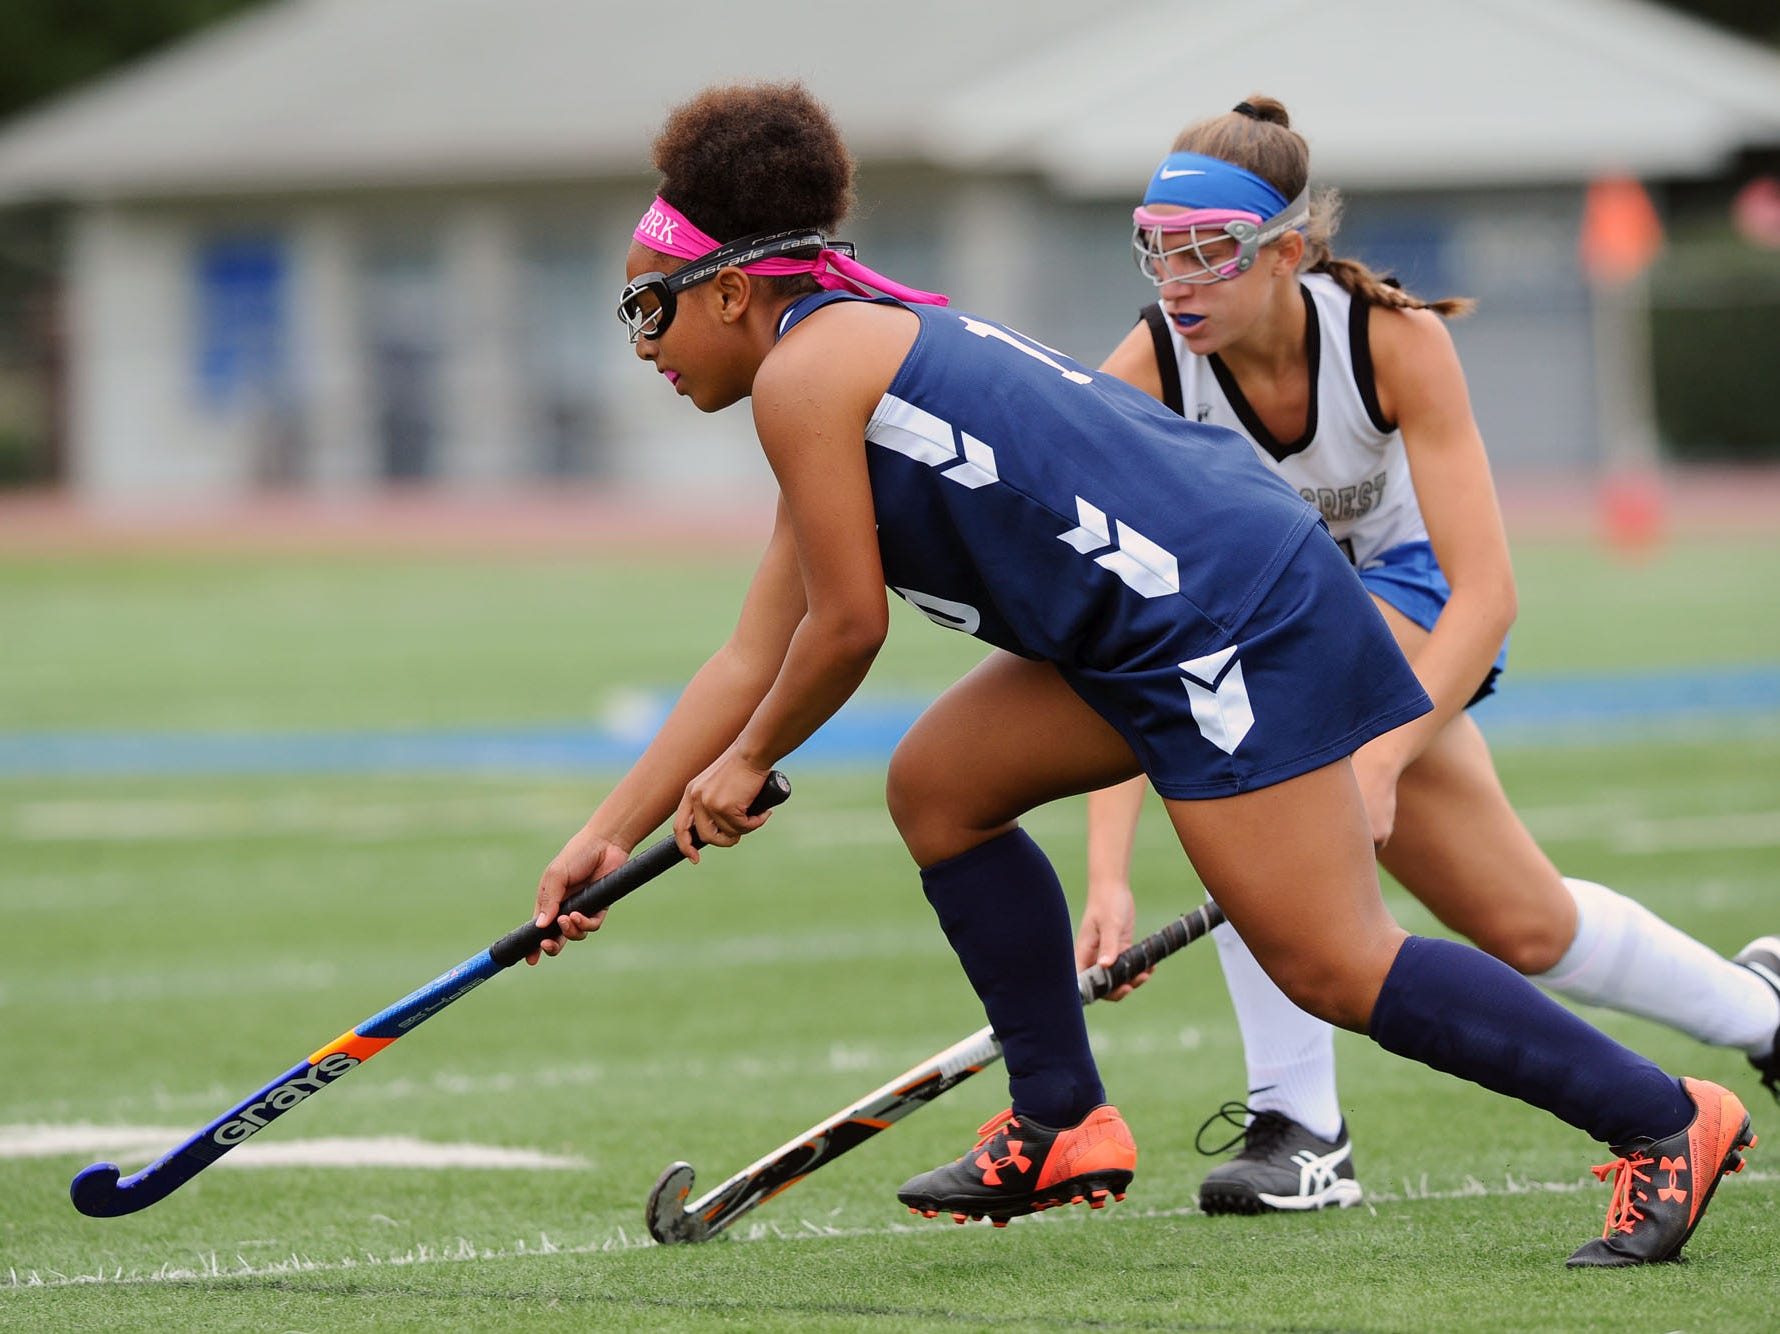 Neveah Green (10) from West York tries to move the ball down field past Regan Vukovich (4) from Cedar Crest during play in the final game of the Falcon Fall Classic at Cedar Crest High School Saturday, September 22,2018.